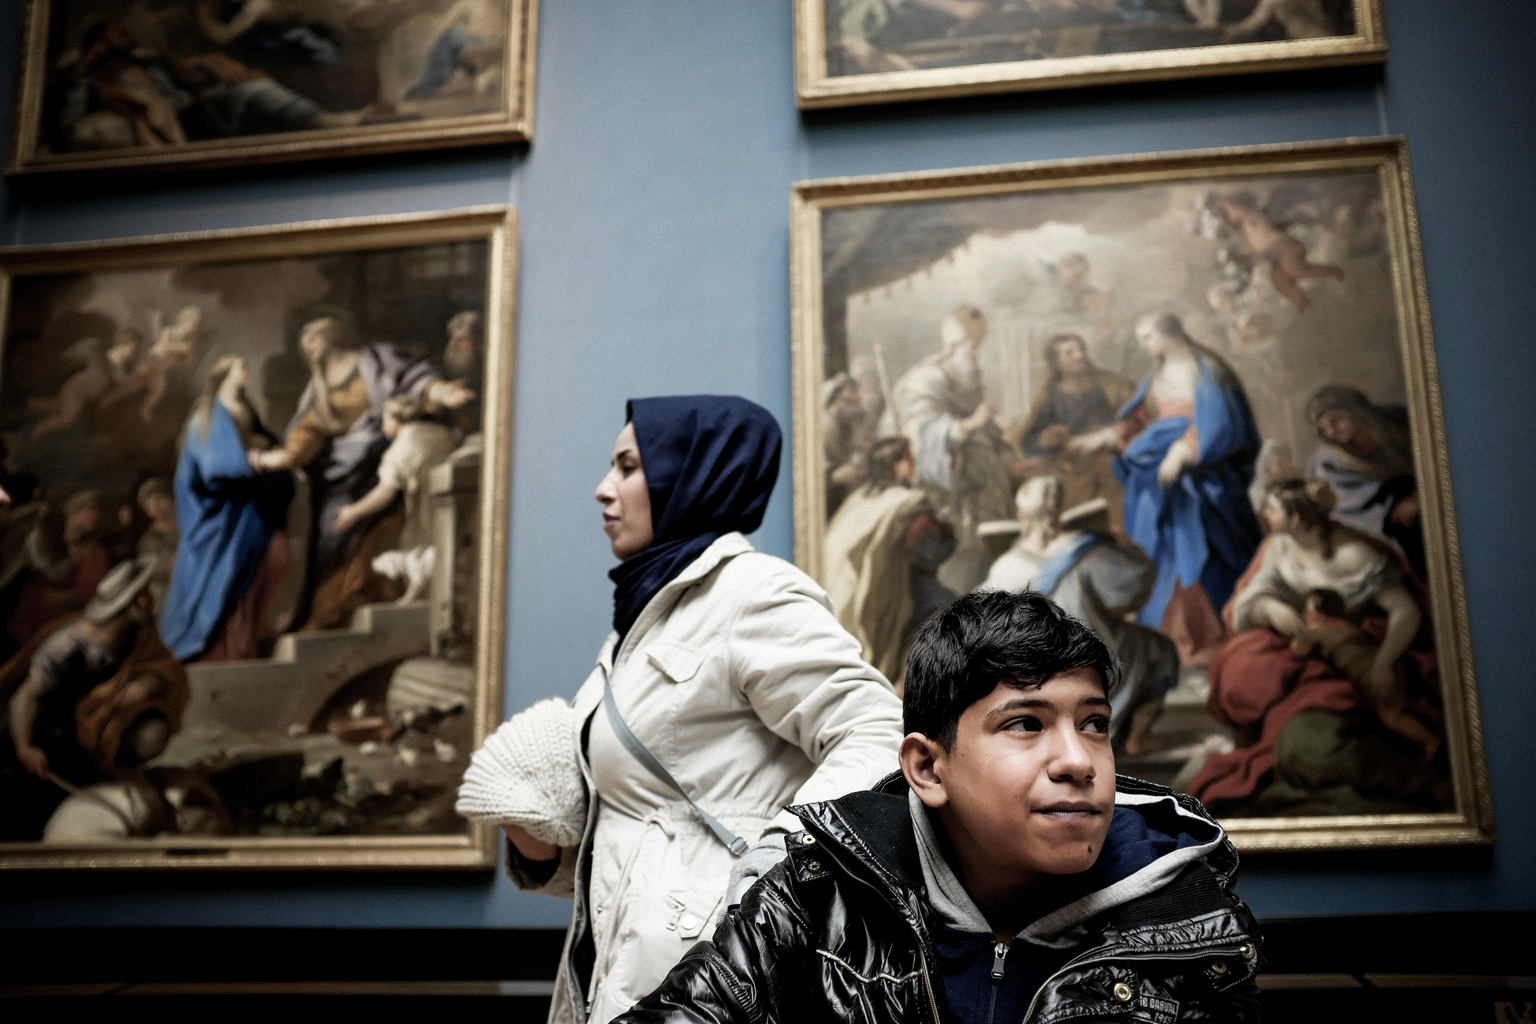 A mother and son in front of a painting.